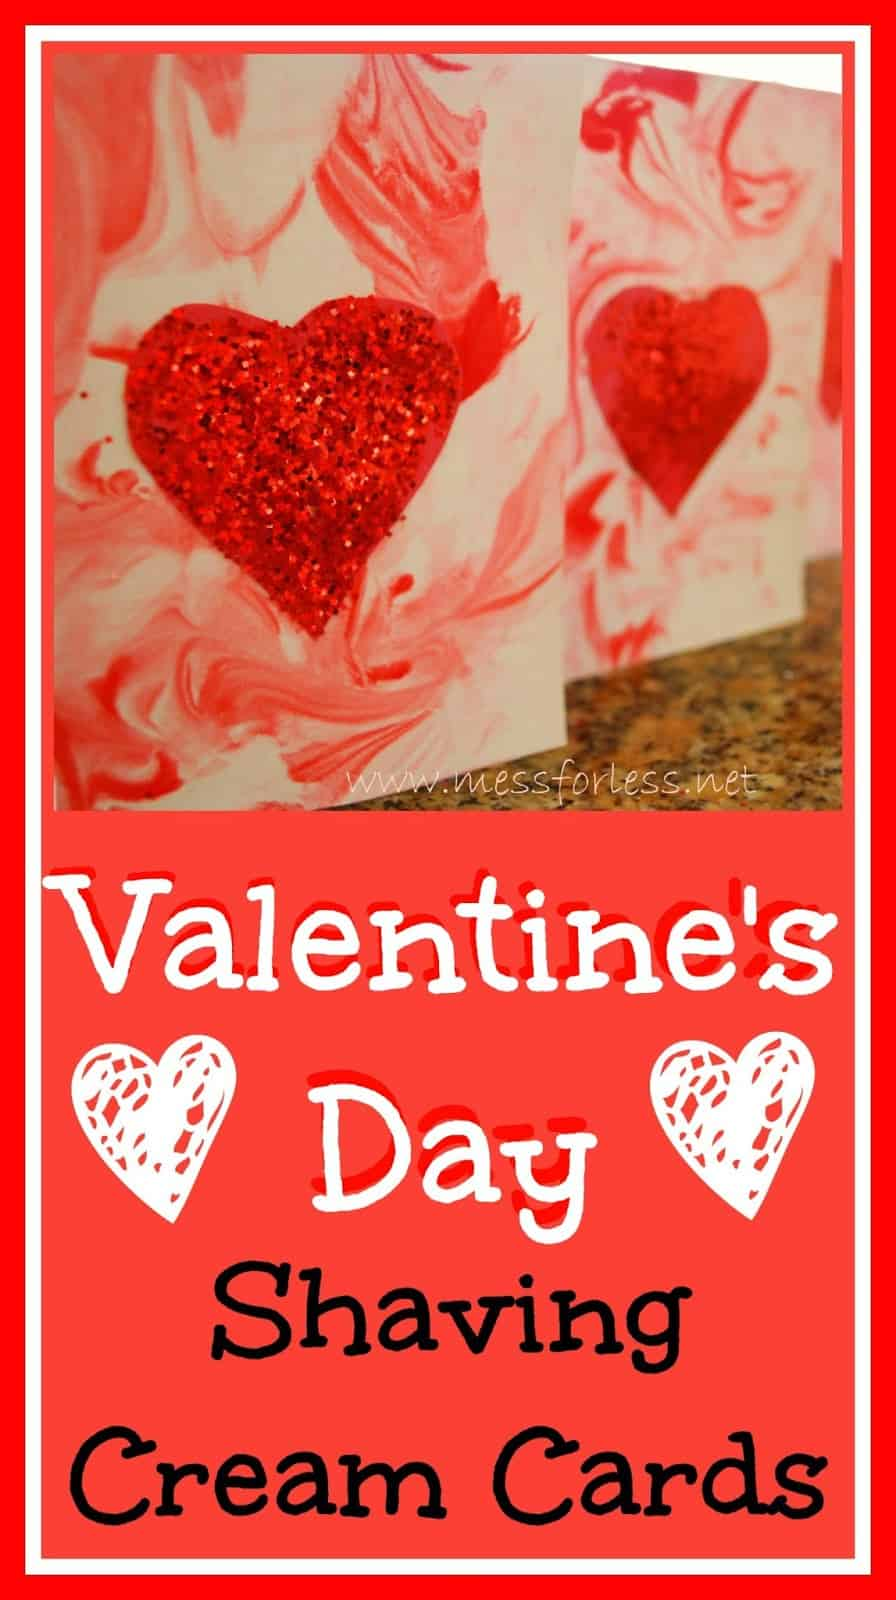 Valentines Day Cards using Shaving Cream Mess for Less – Kids Valentines Day Card